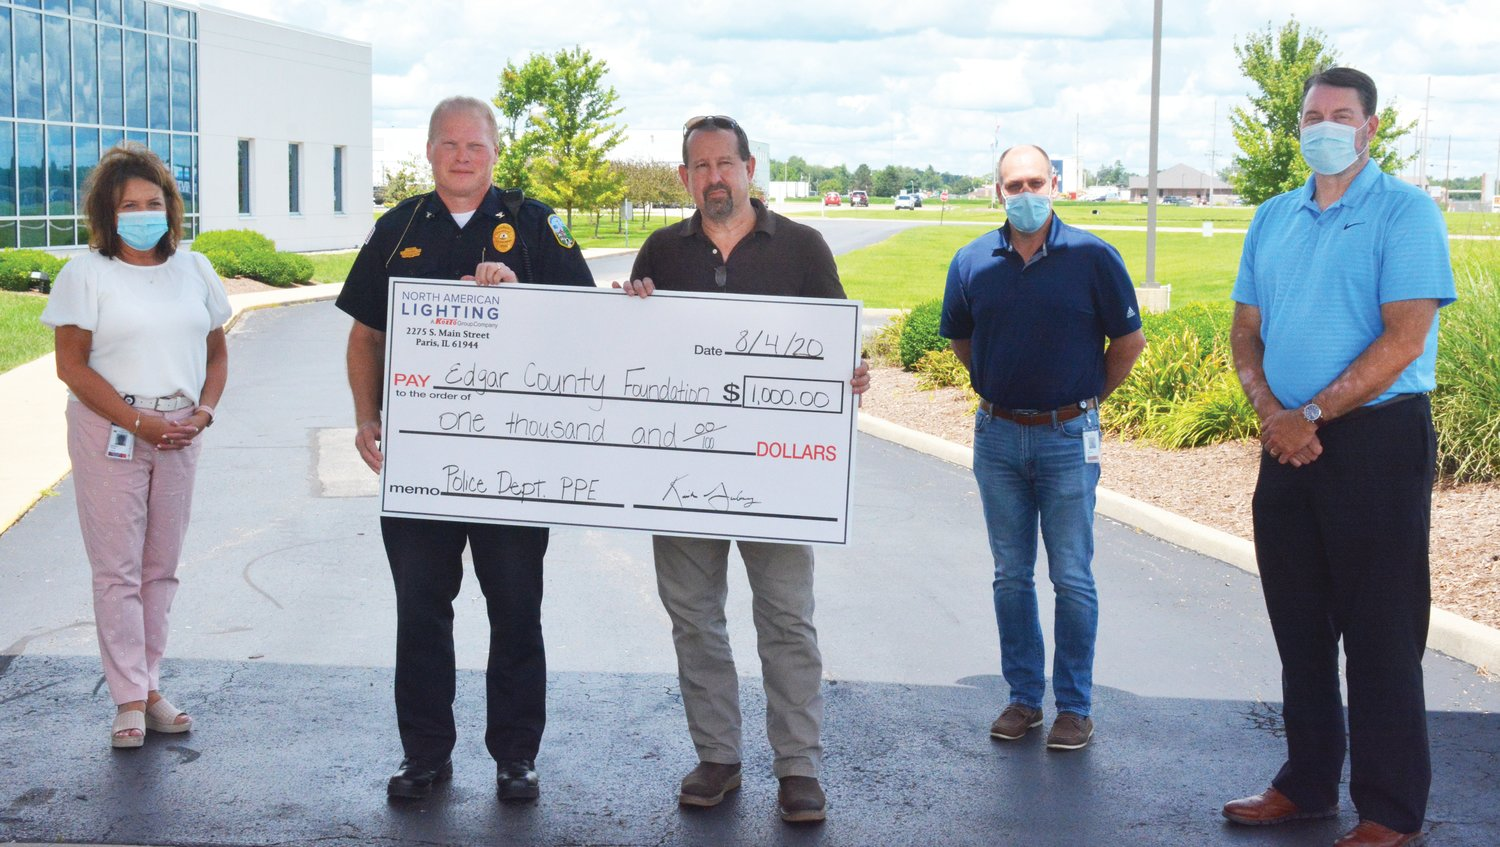 North American Lighting donates $1,000 to the project seeking to buy improved body armor and helmets for every law enforcement officer in Edgar County. Left to right, Sandy Webb, Paris Police Chief Eric Brown, Edgar County Sheriff Jeff Wood, Kirk Gadberry and Chad Thompson.